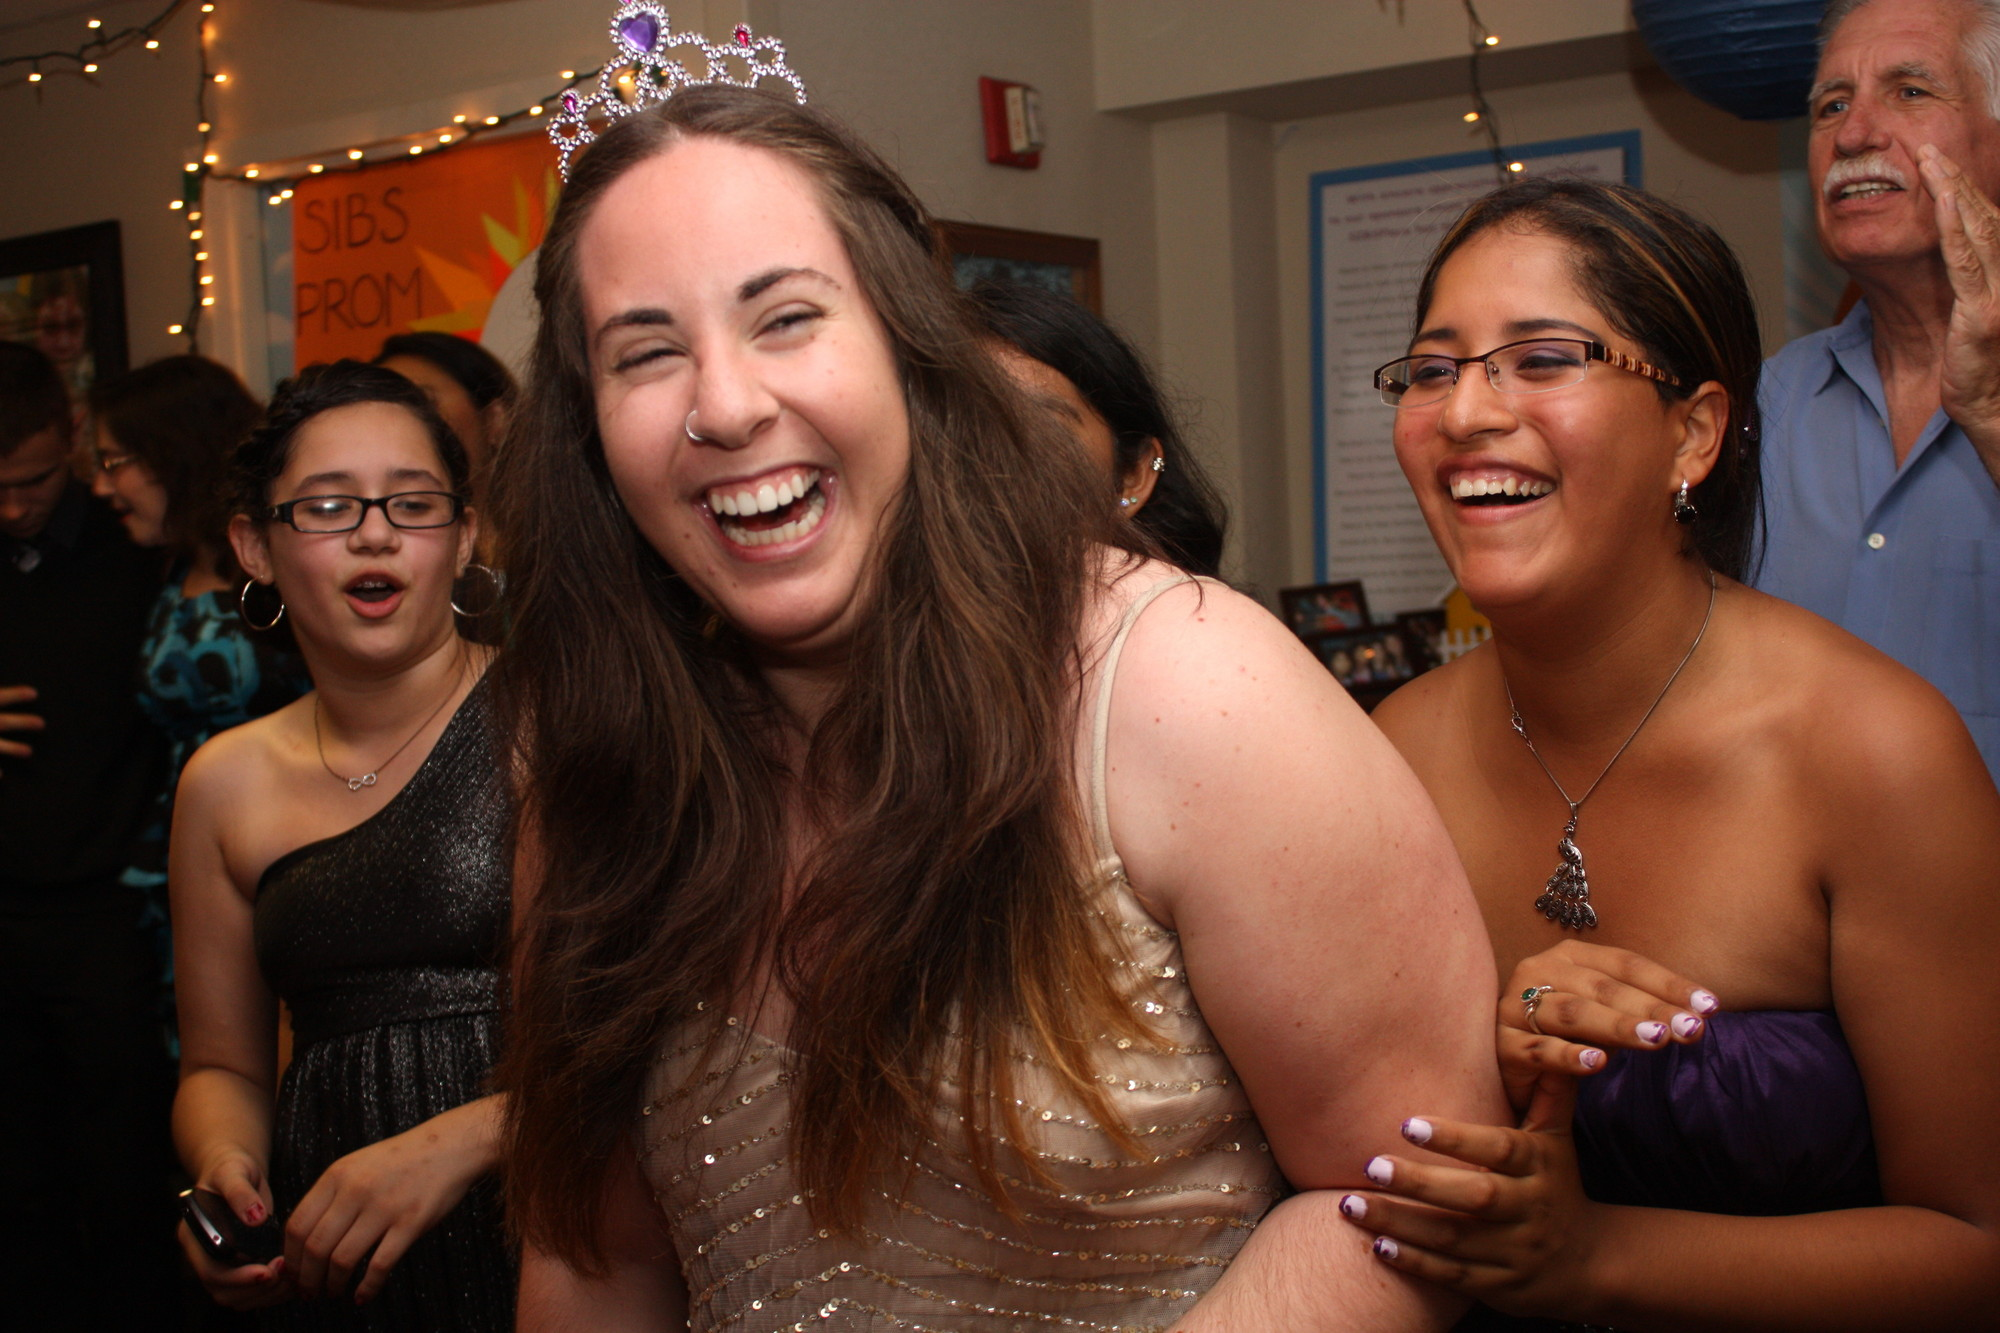 High school graduate and SIBSPlace participant Gabrielle Cohen sashayed through the prom party along with Melissa Joliz, at right.